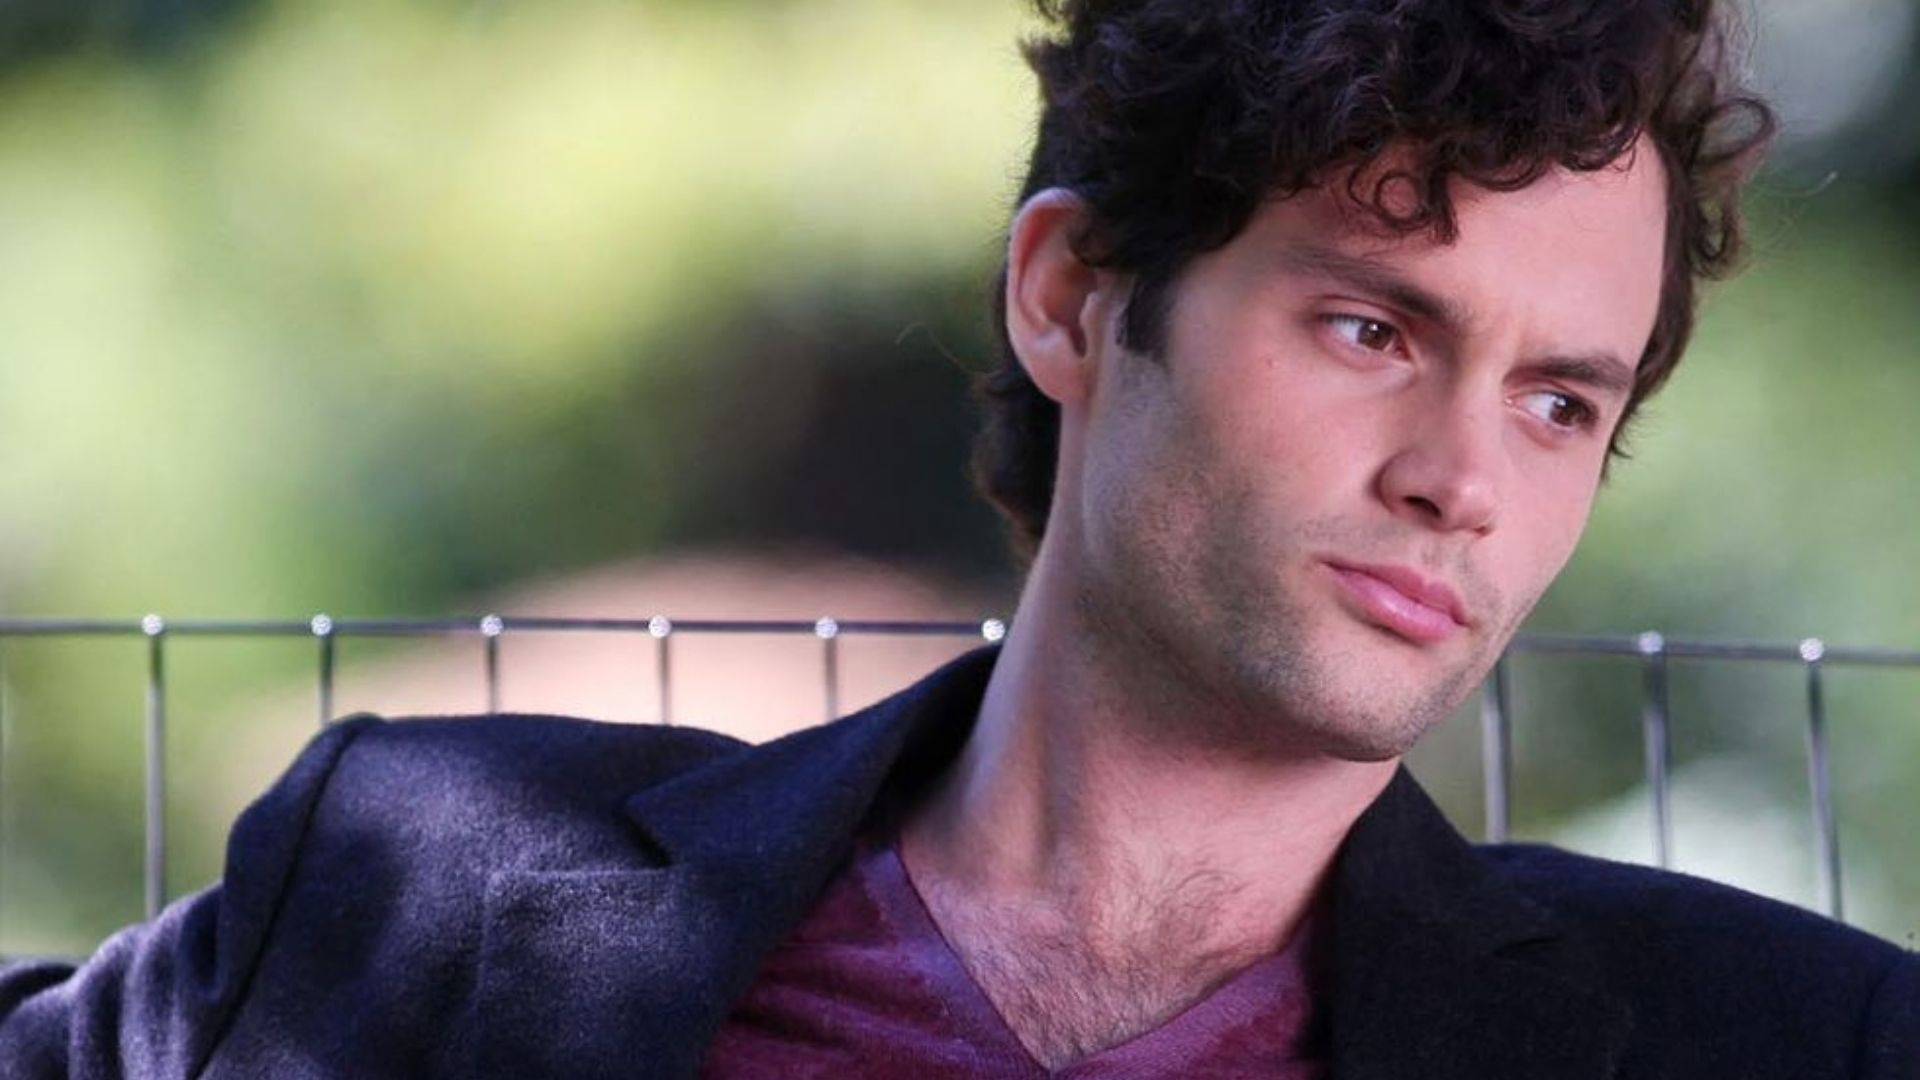 Will Penn Badgley Appear In The Gossip Girl Reboot?